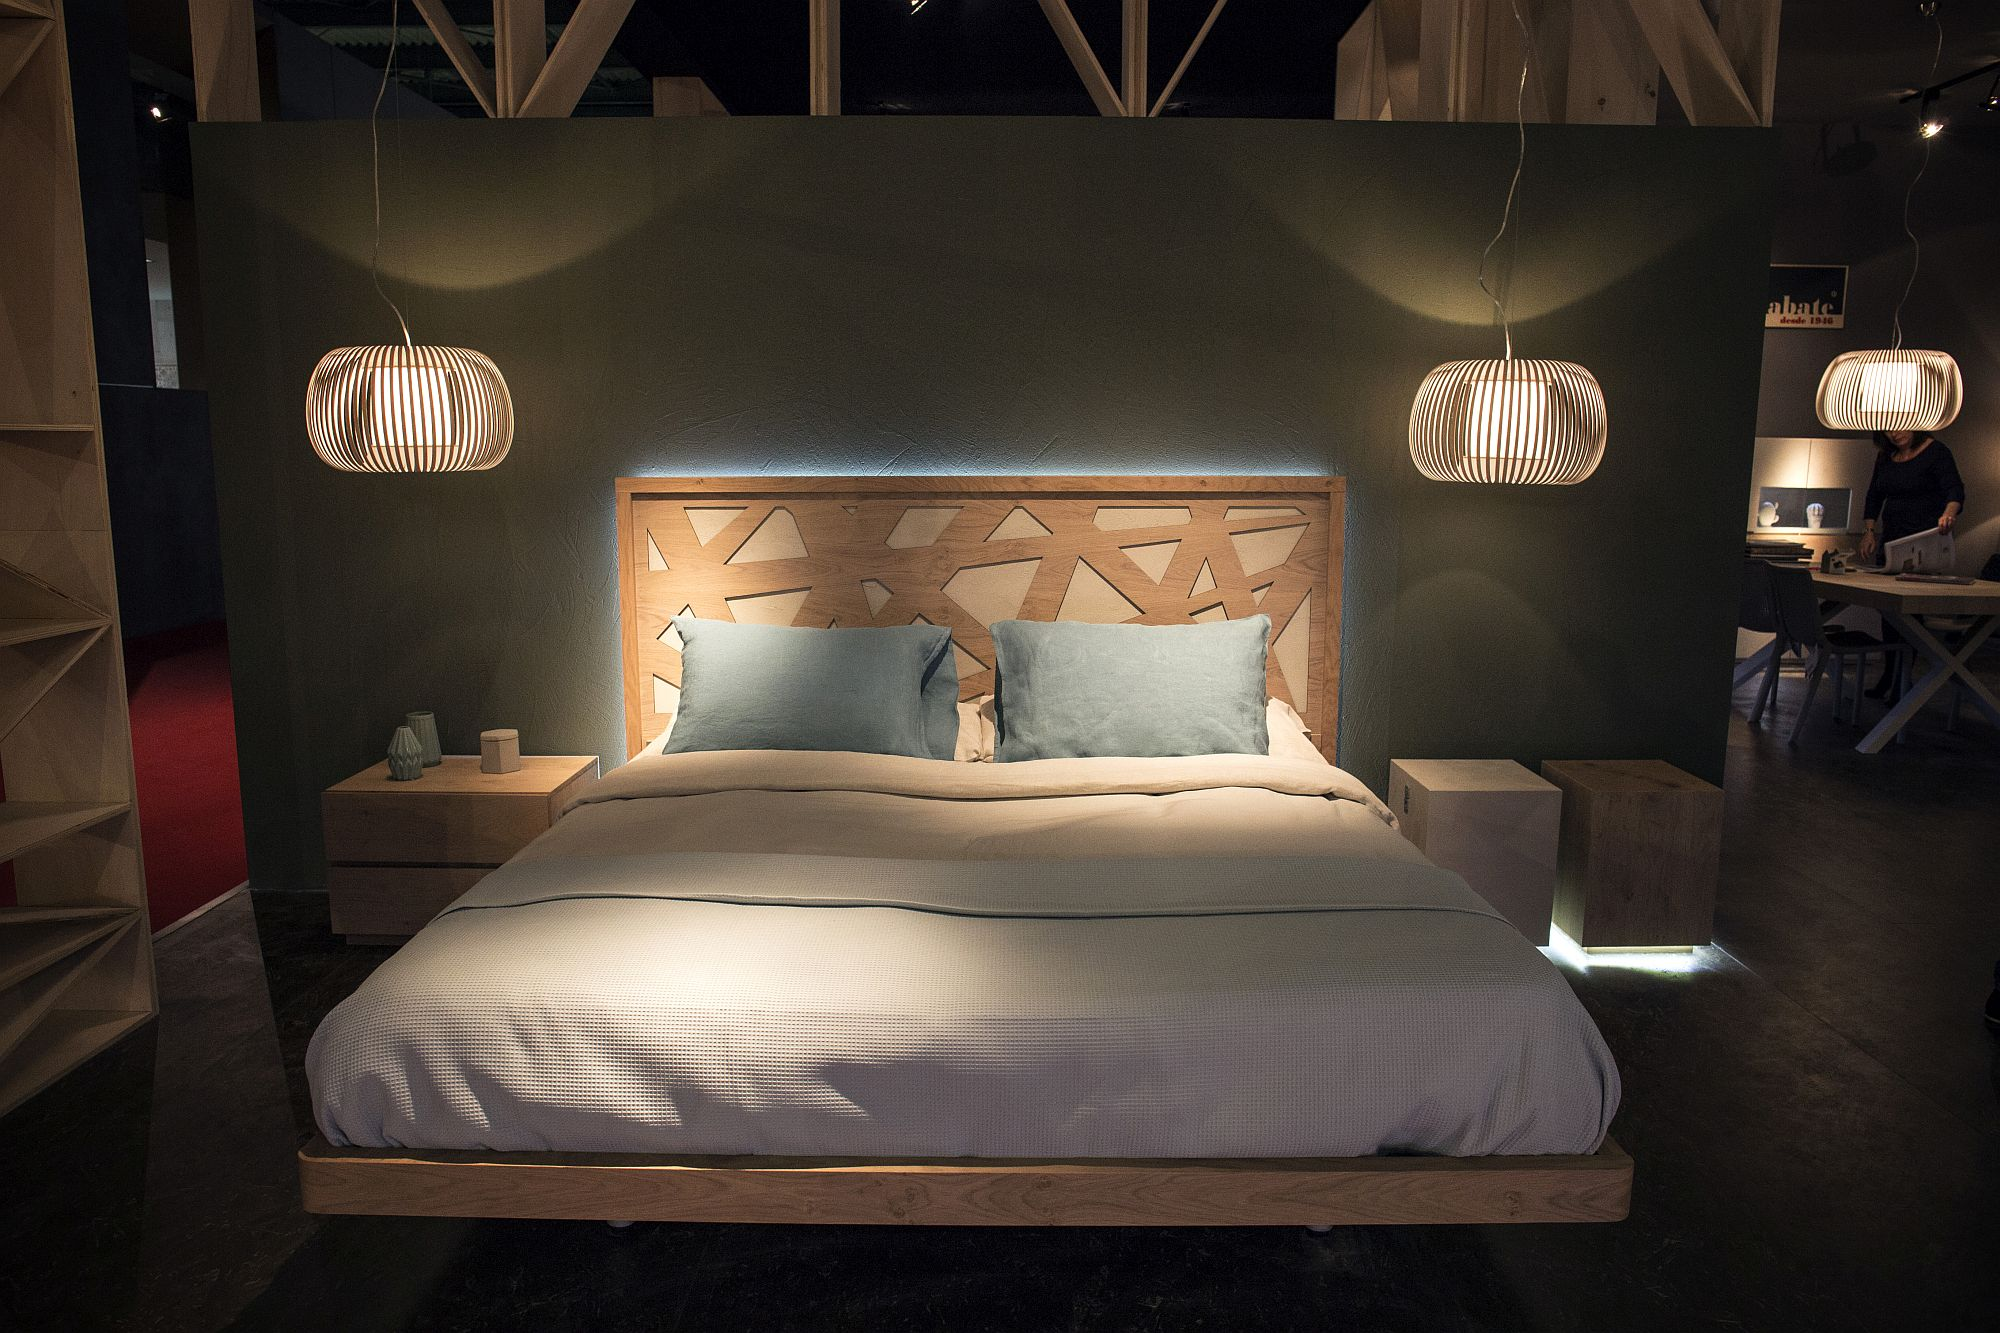 Wooden frame gives the bed a modern, yet natural vibe